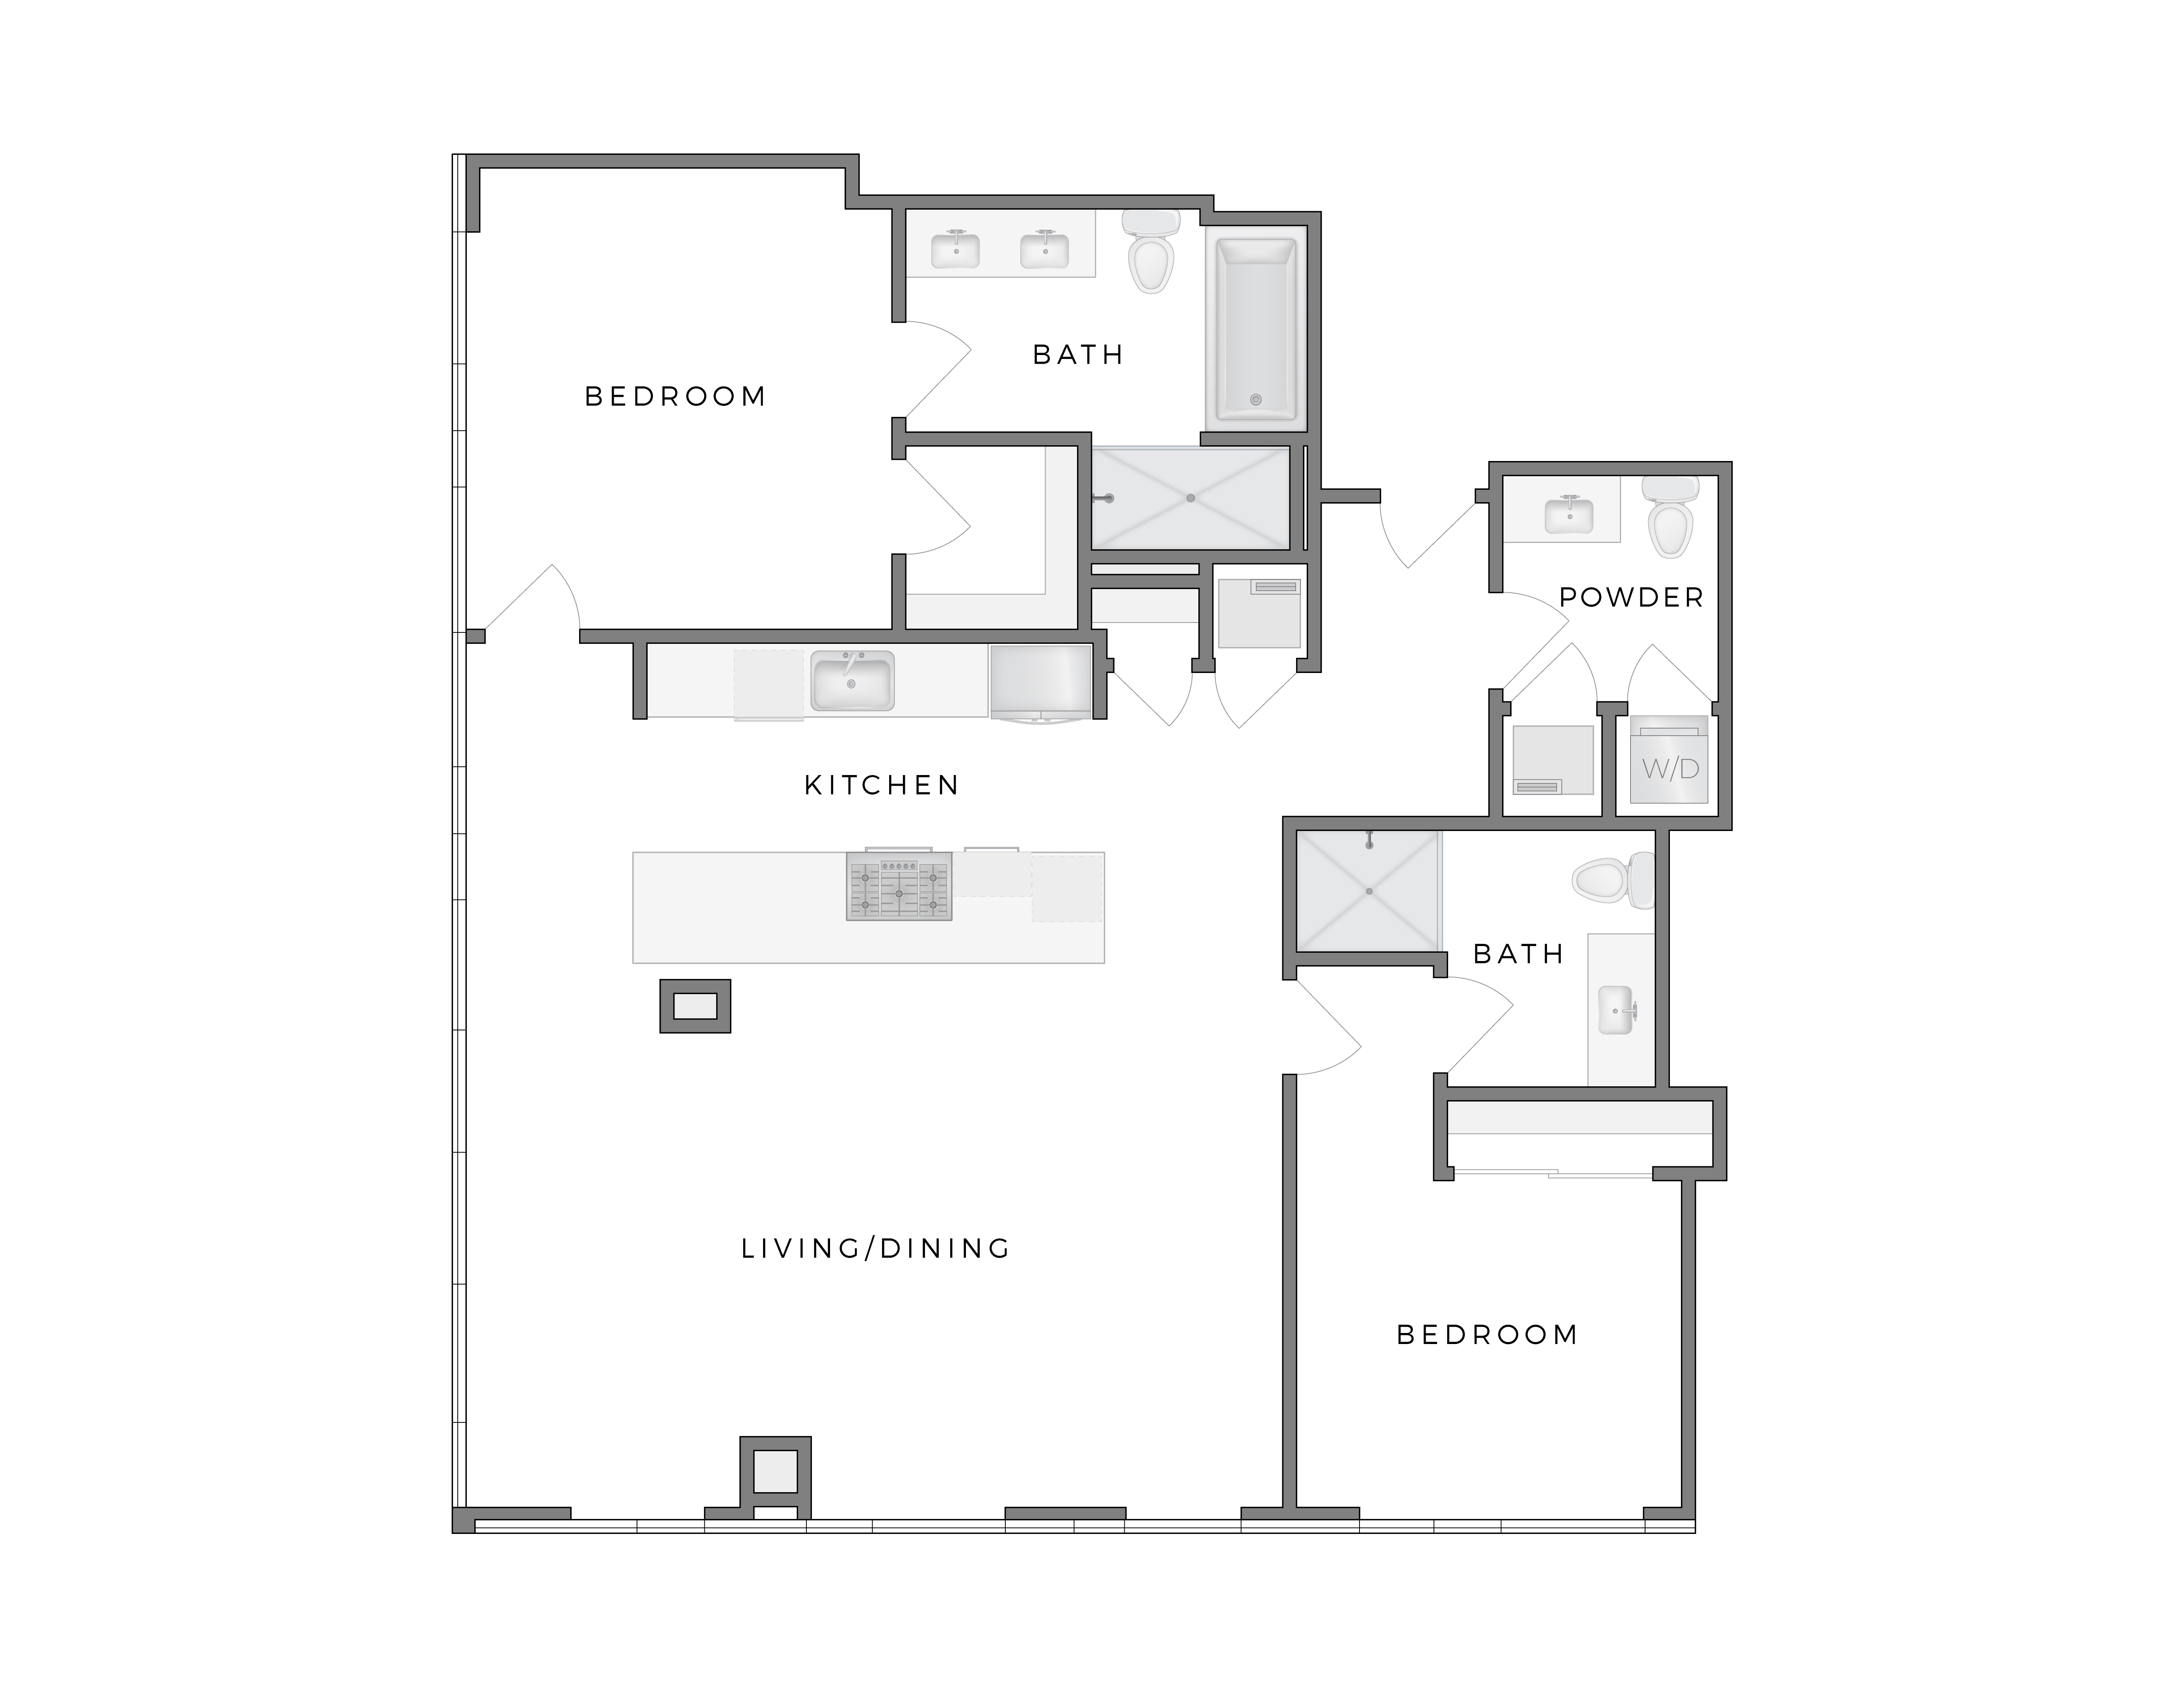 Atelier Warhol 6 apartment floorplan diagram with two bedrooms, two and a half bathrooms, kitchen, and living dining area